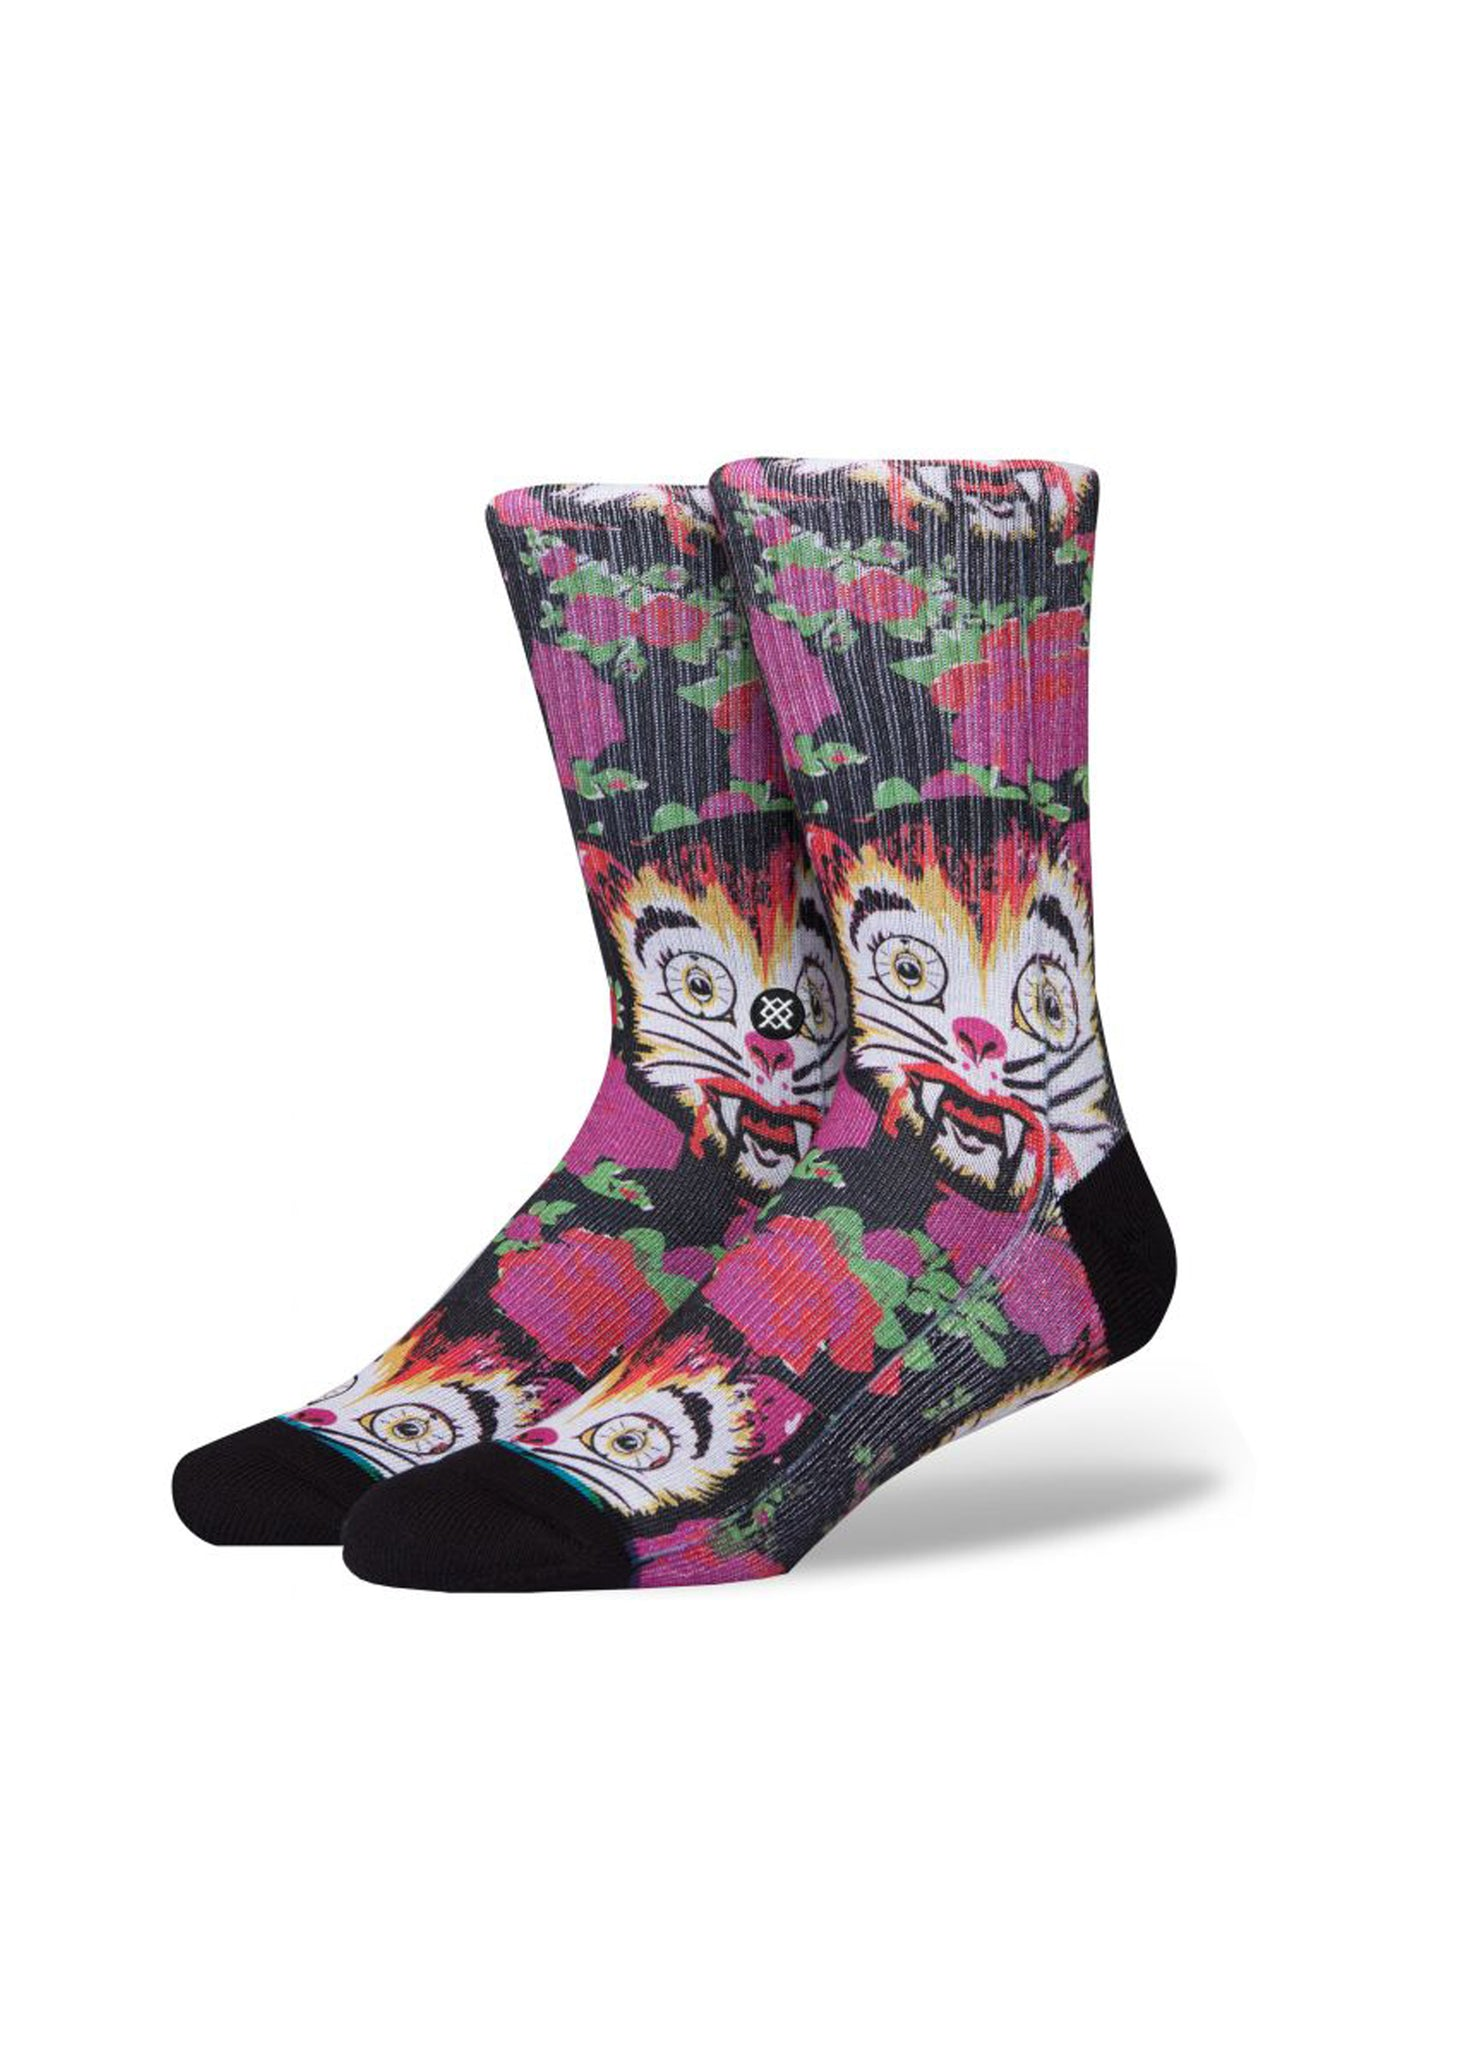 CAT MAN DO HIGH BOY SOCKS - SOCKS - Libertine